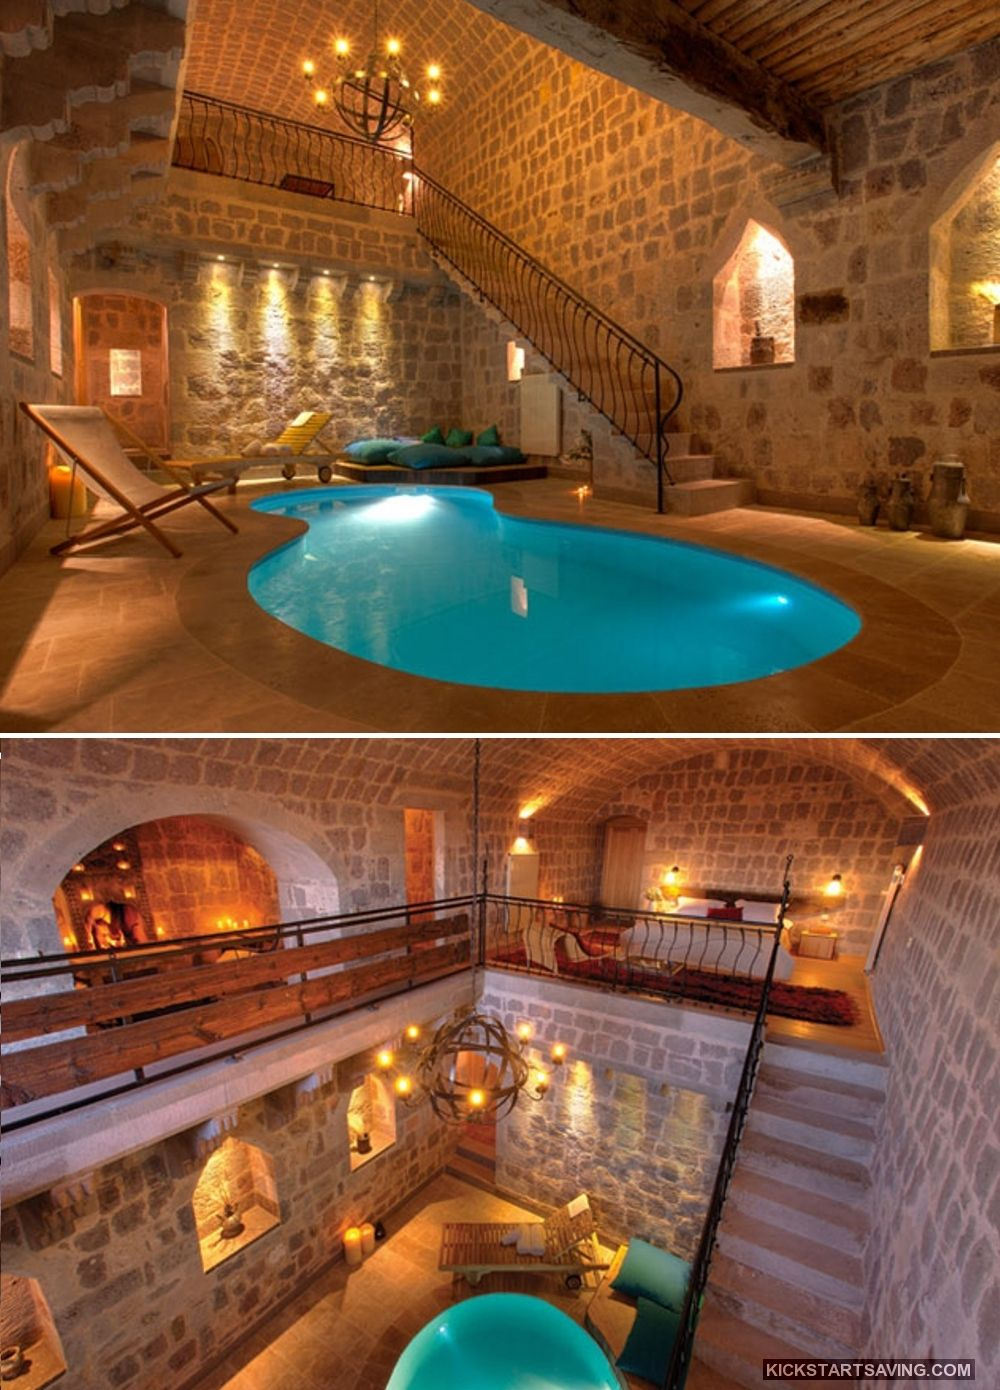 Jacuzzi Pool Argos Argos Hotel Cappadocia Dream Travel House Design Home House